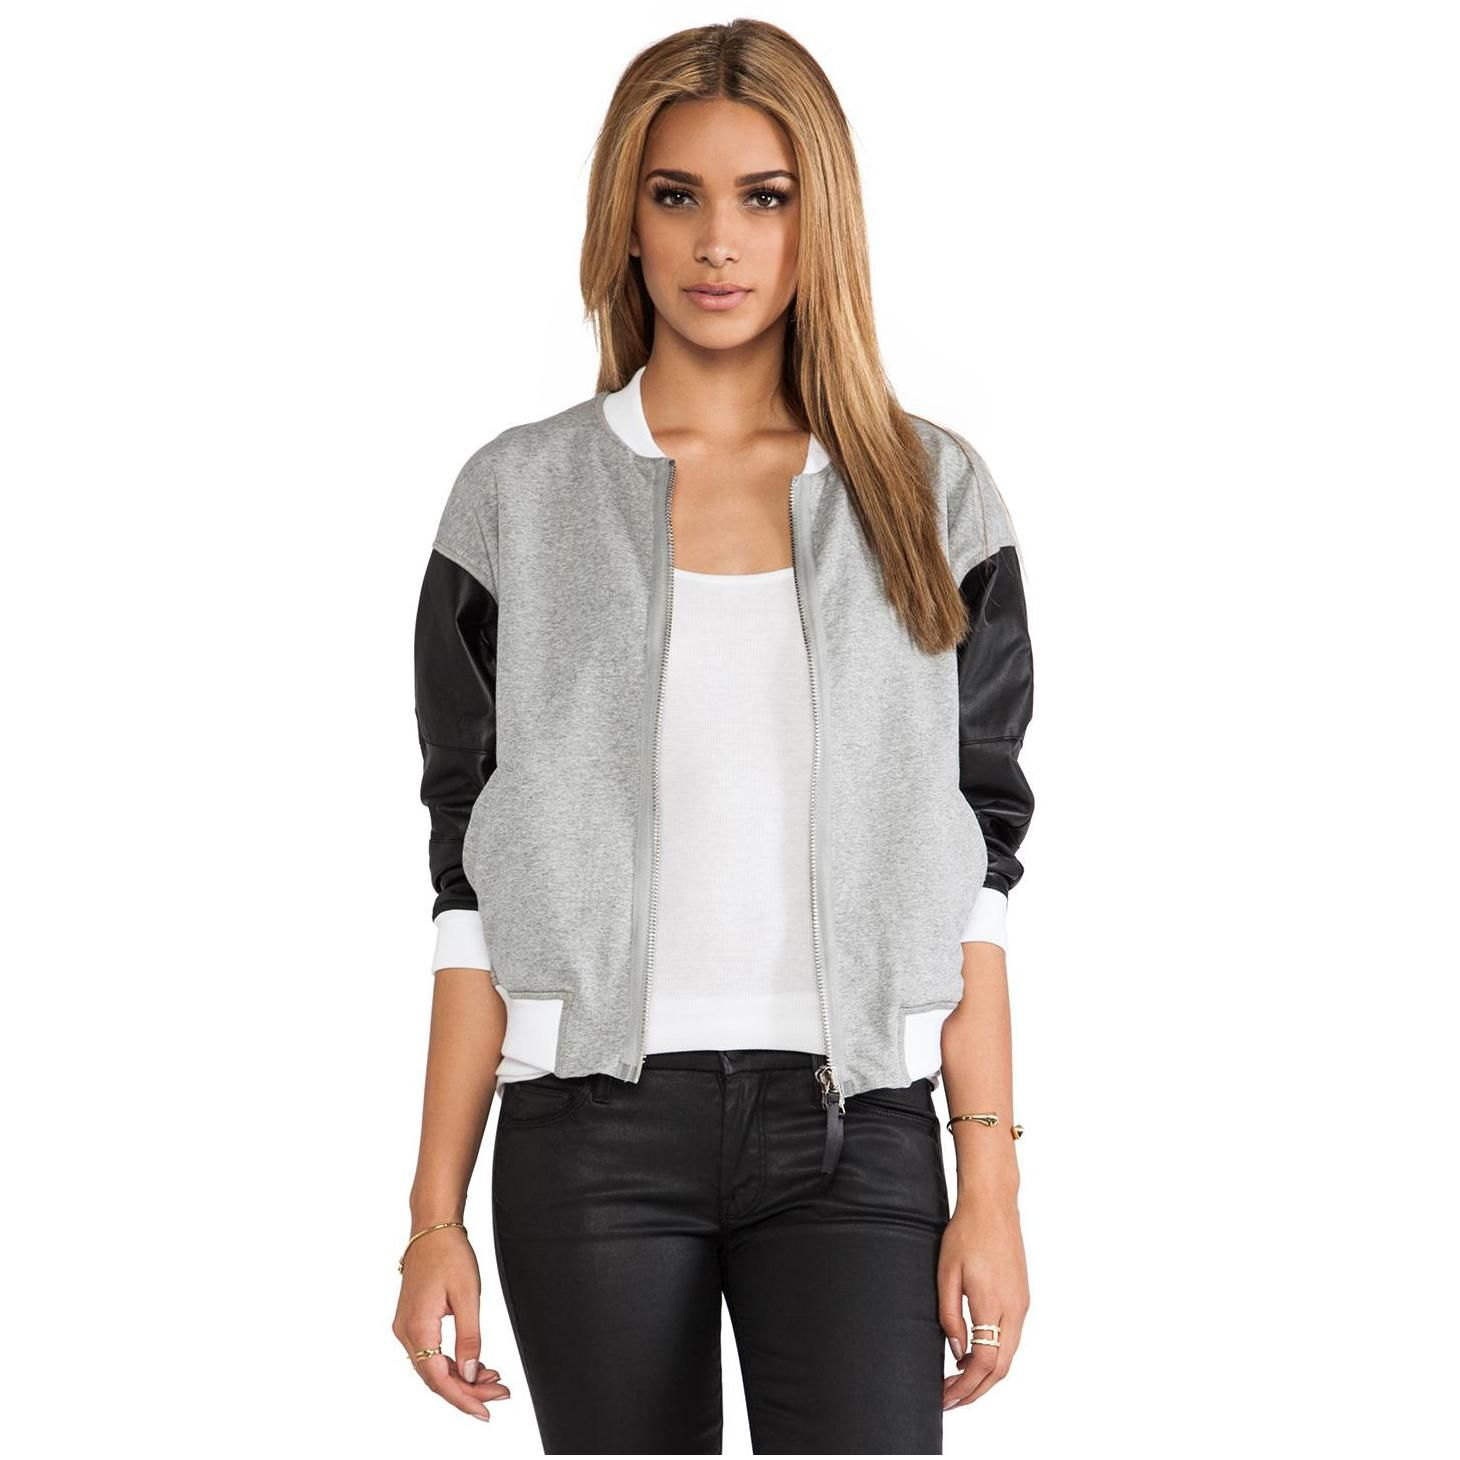 BROGDEN Bomber Jacket for Women | fashion: a dream closet ...